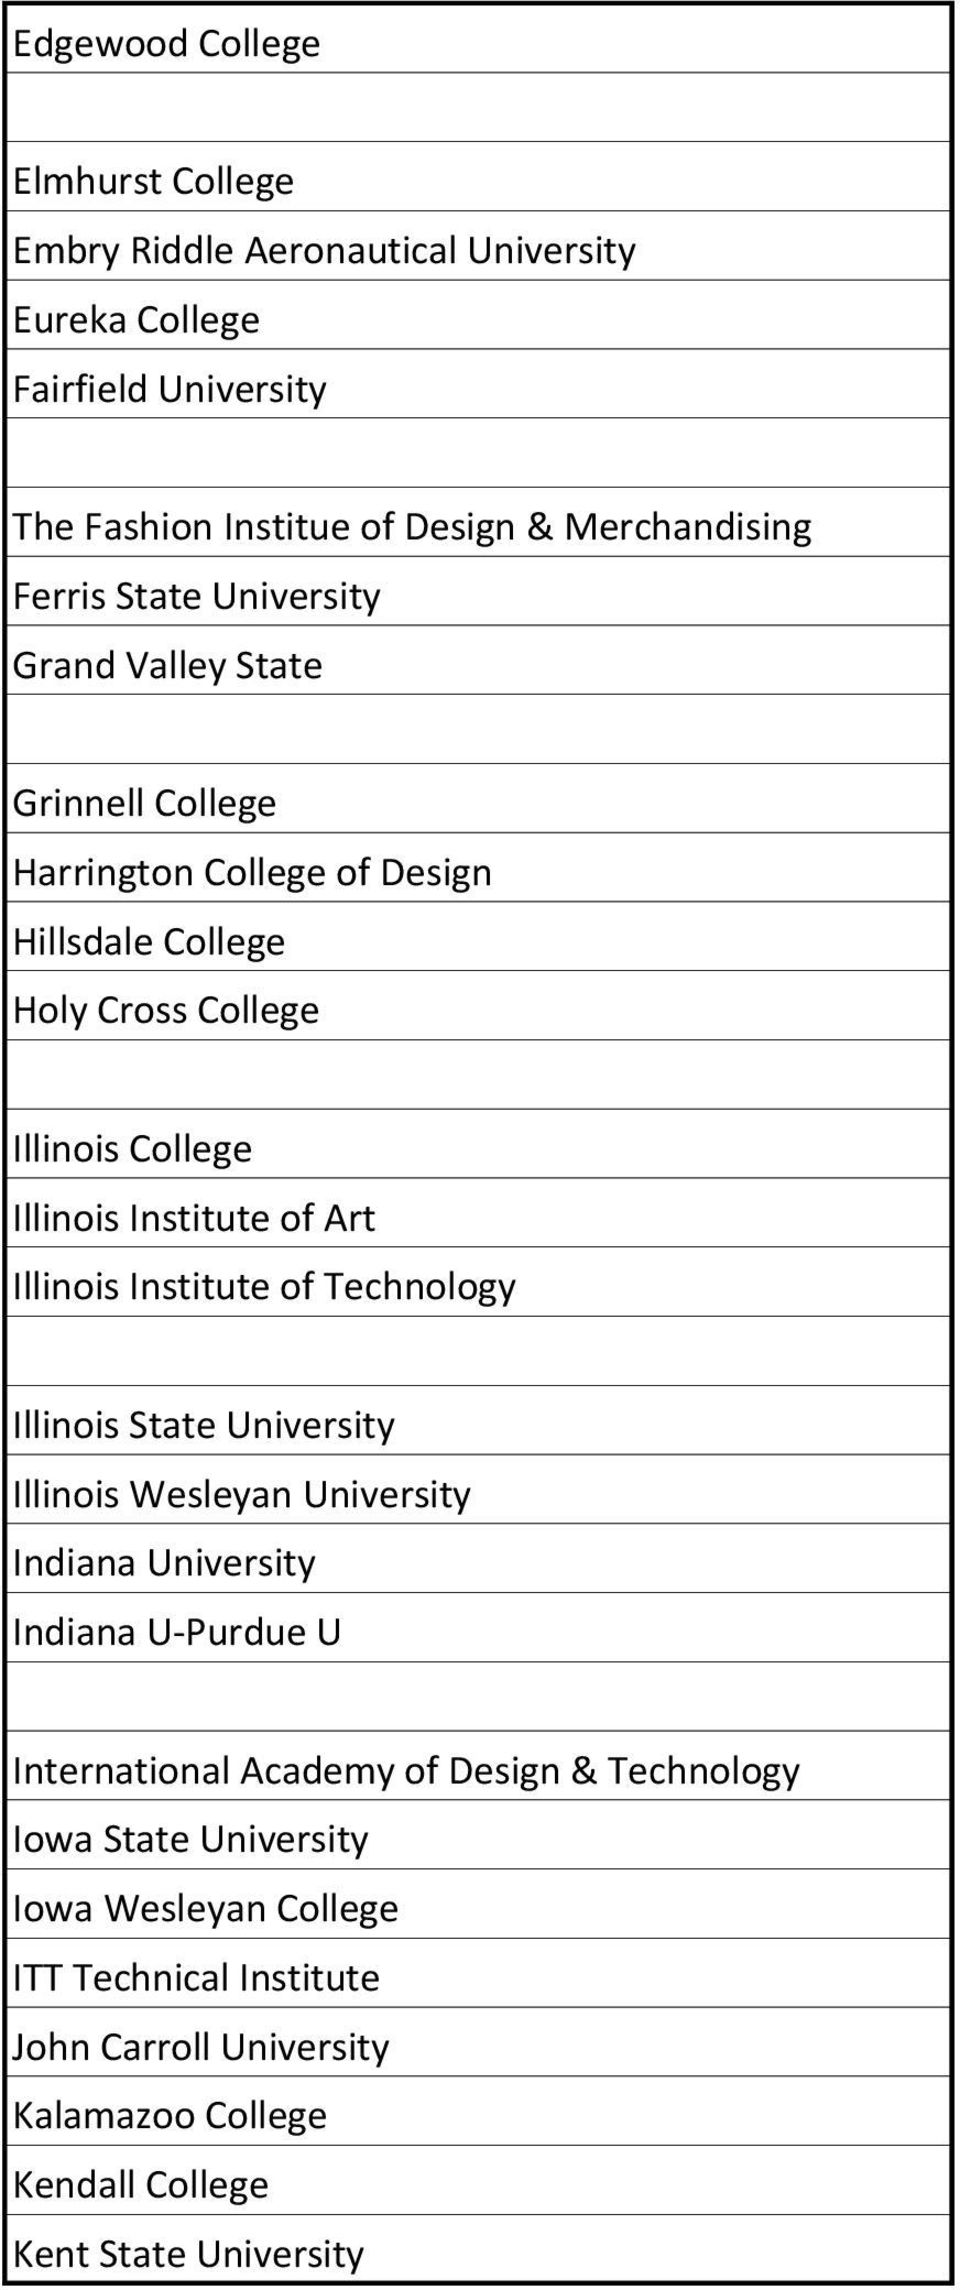 Art Illinois Institute of Technology Illinois State University Illinois Wesleyan University Indiana University Indiana U-Purdue U International Academy of